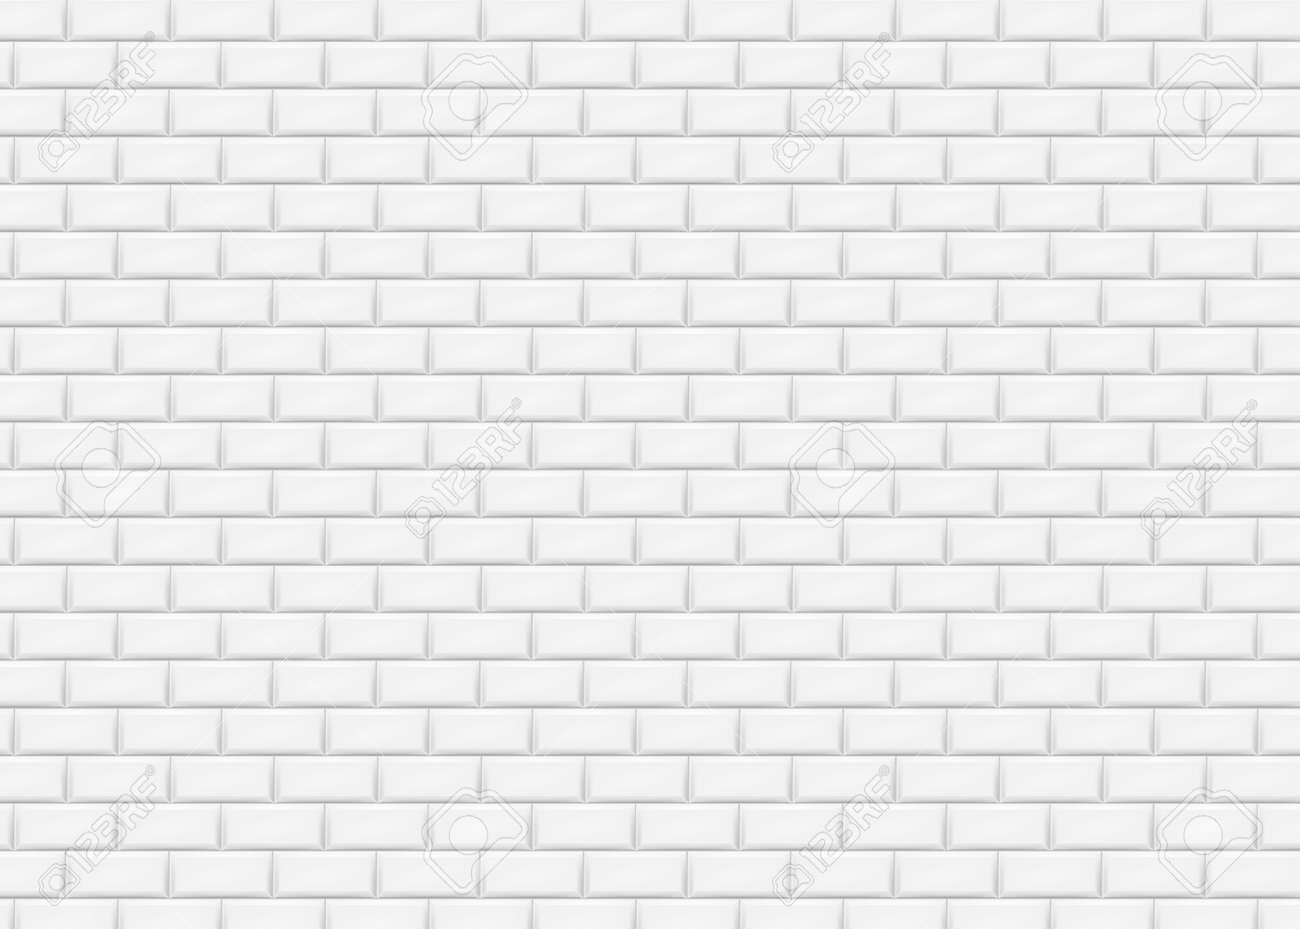 White brick wall in subway tile pattern. Vector illustration. Eps 10. - 81475810